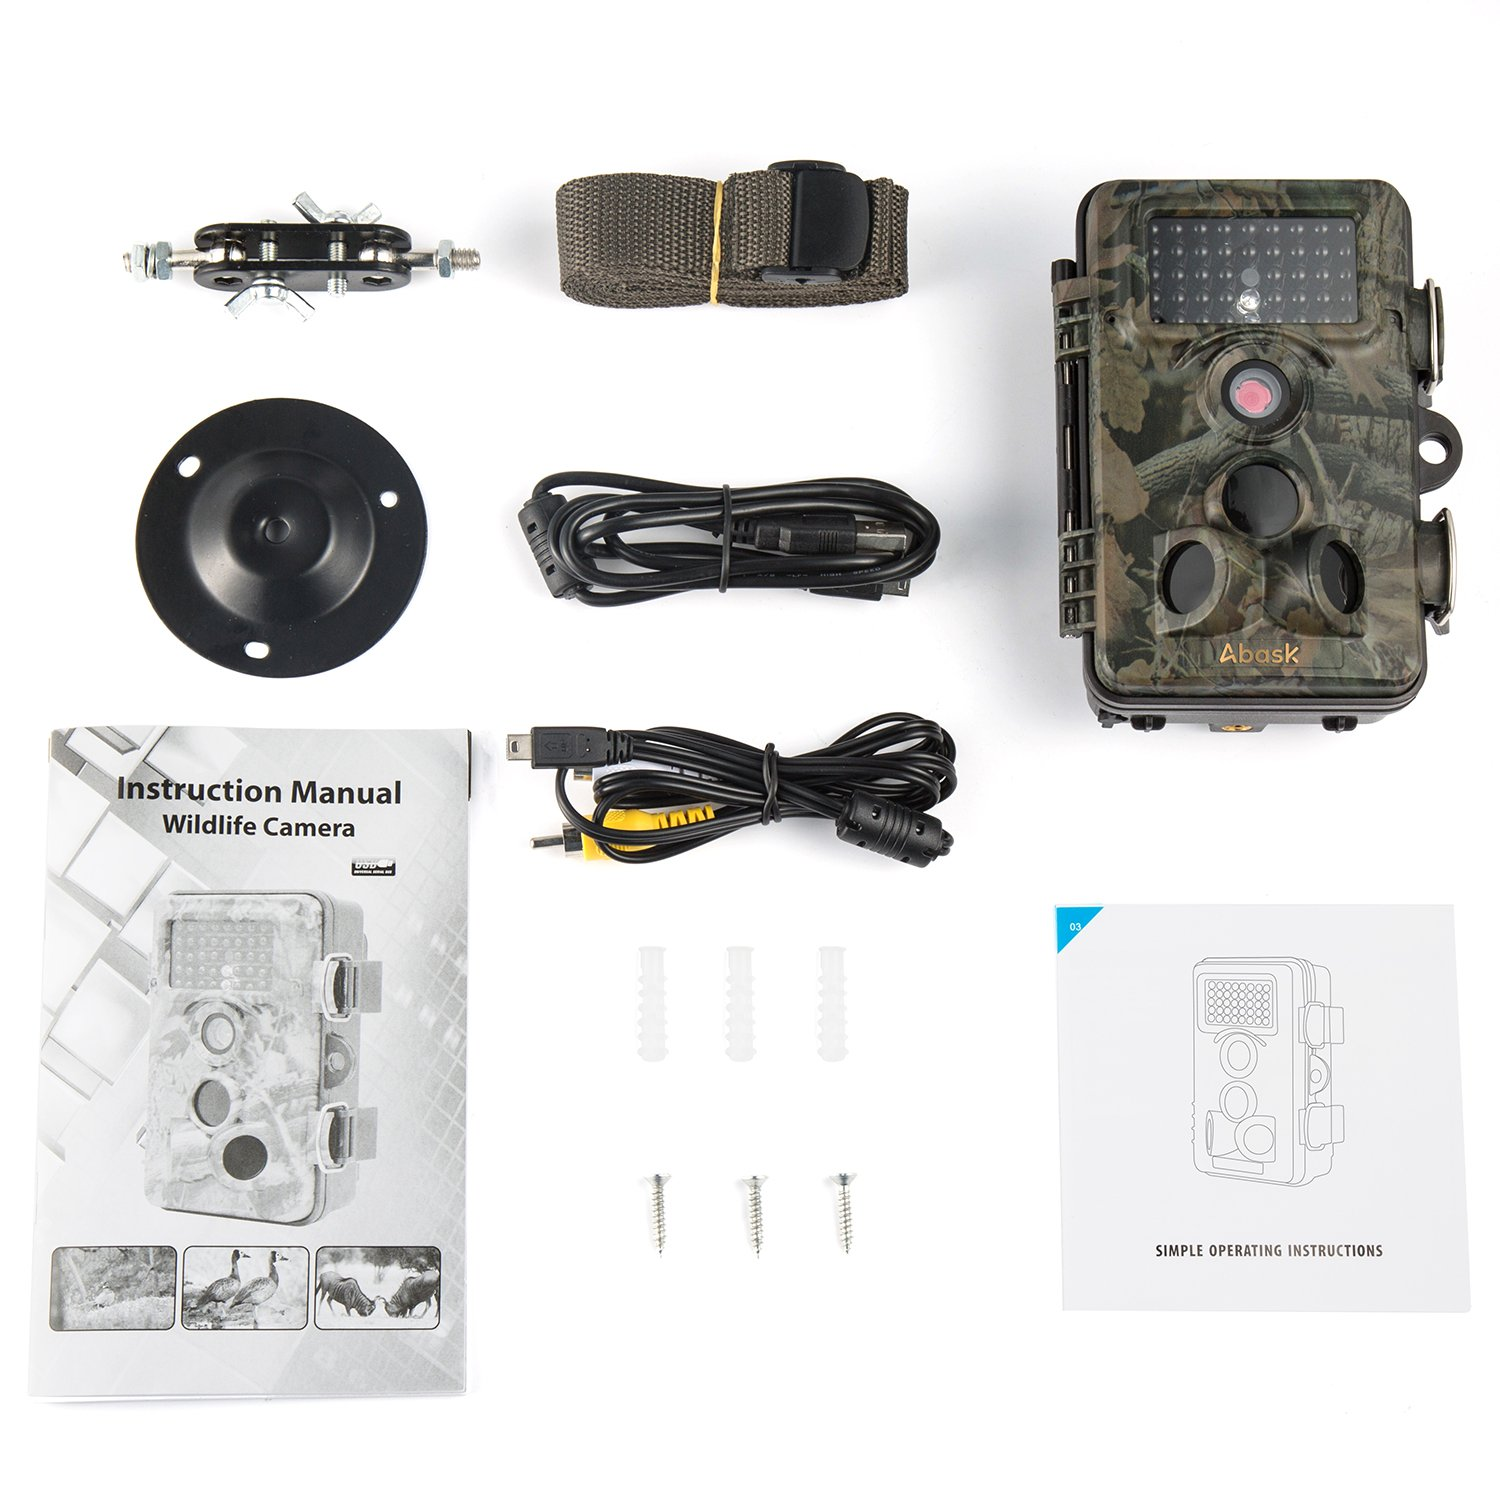 abask trail camera instructions